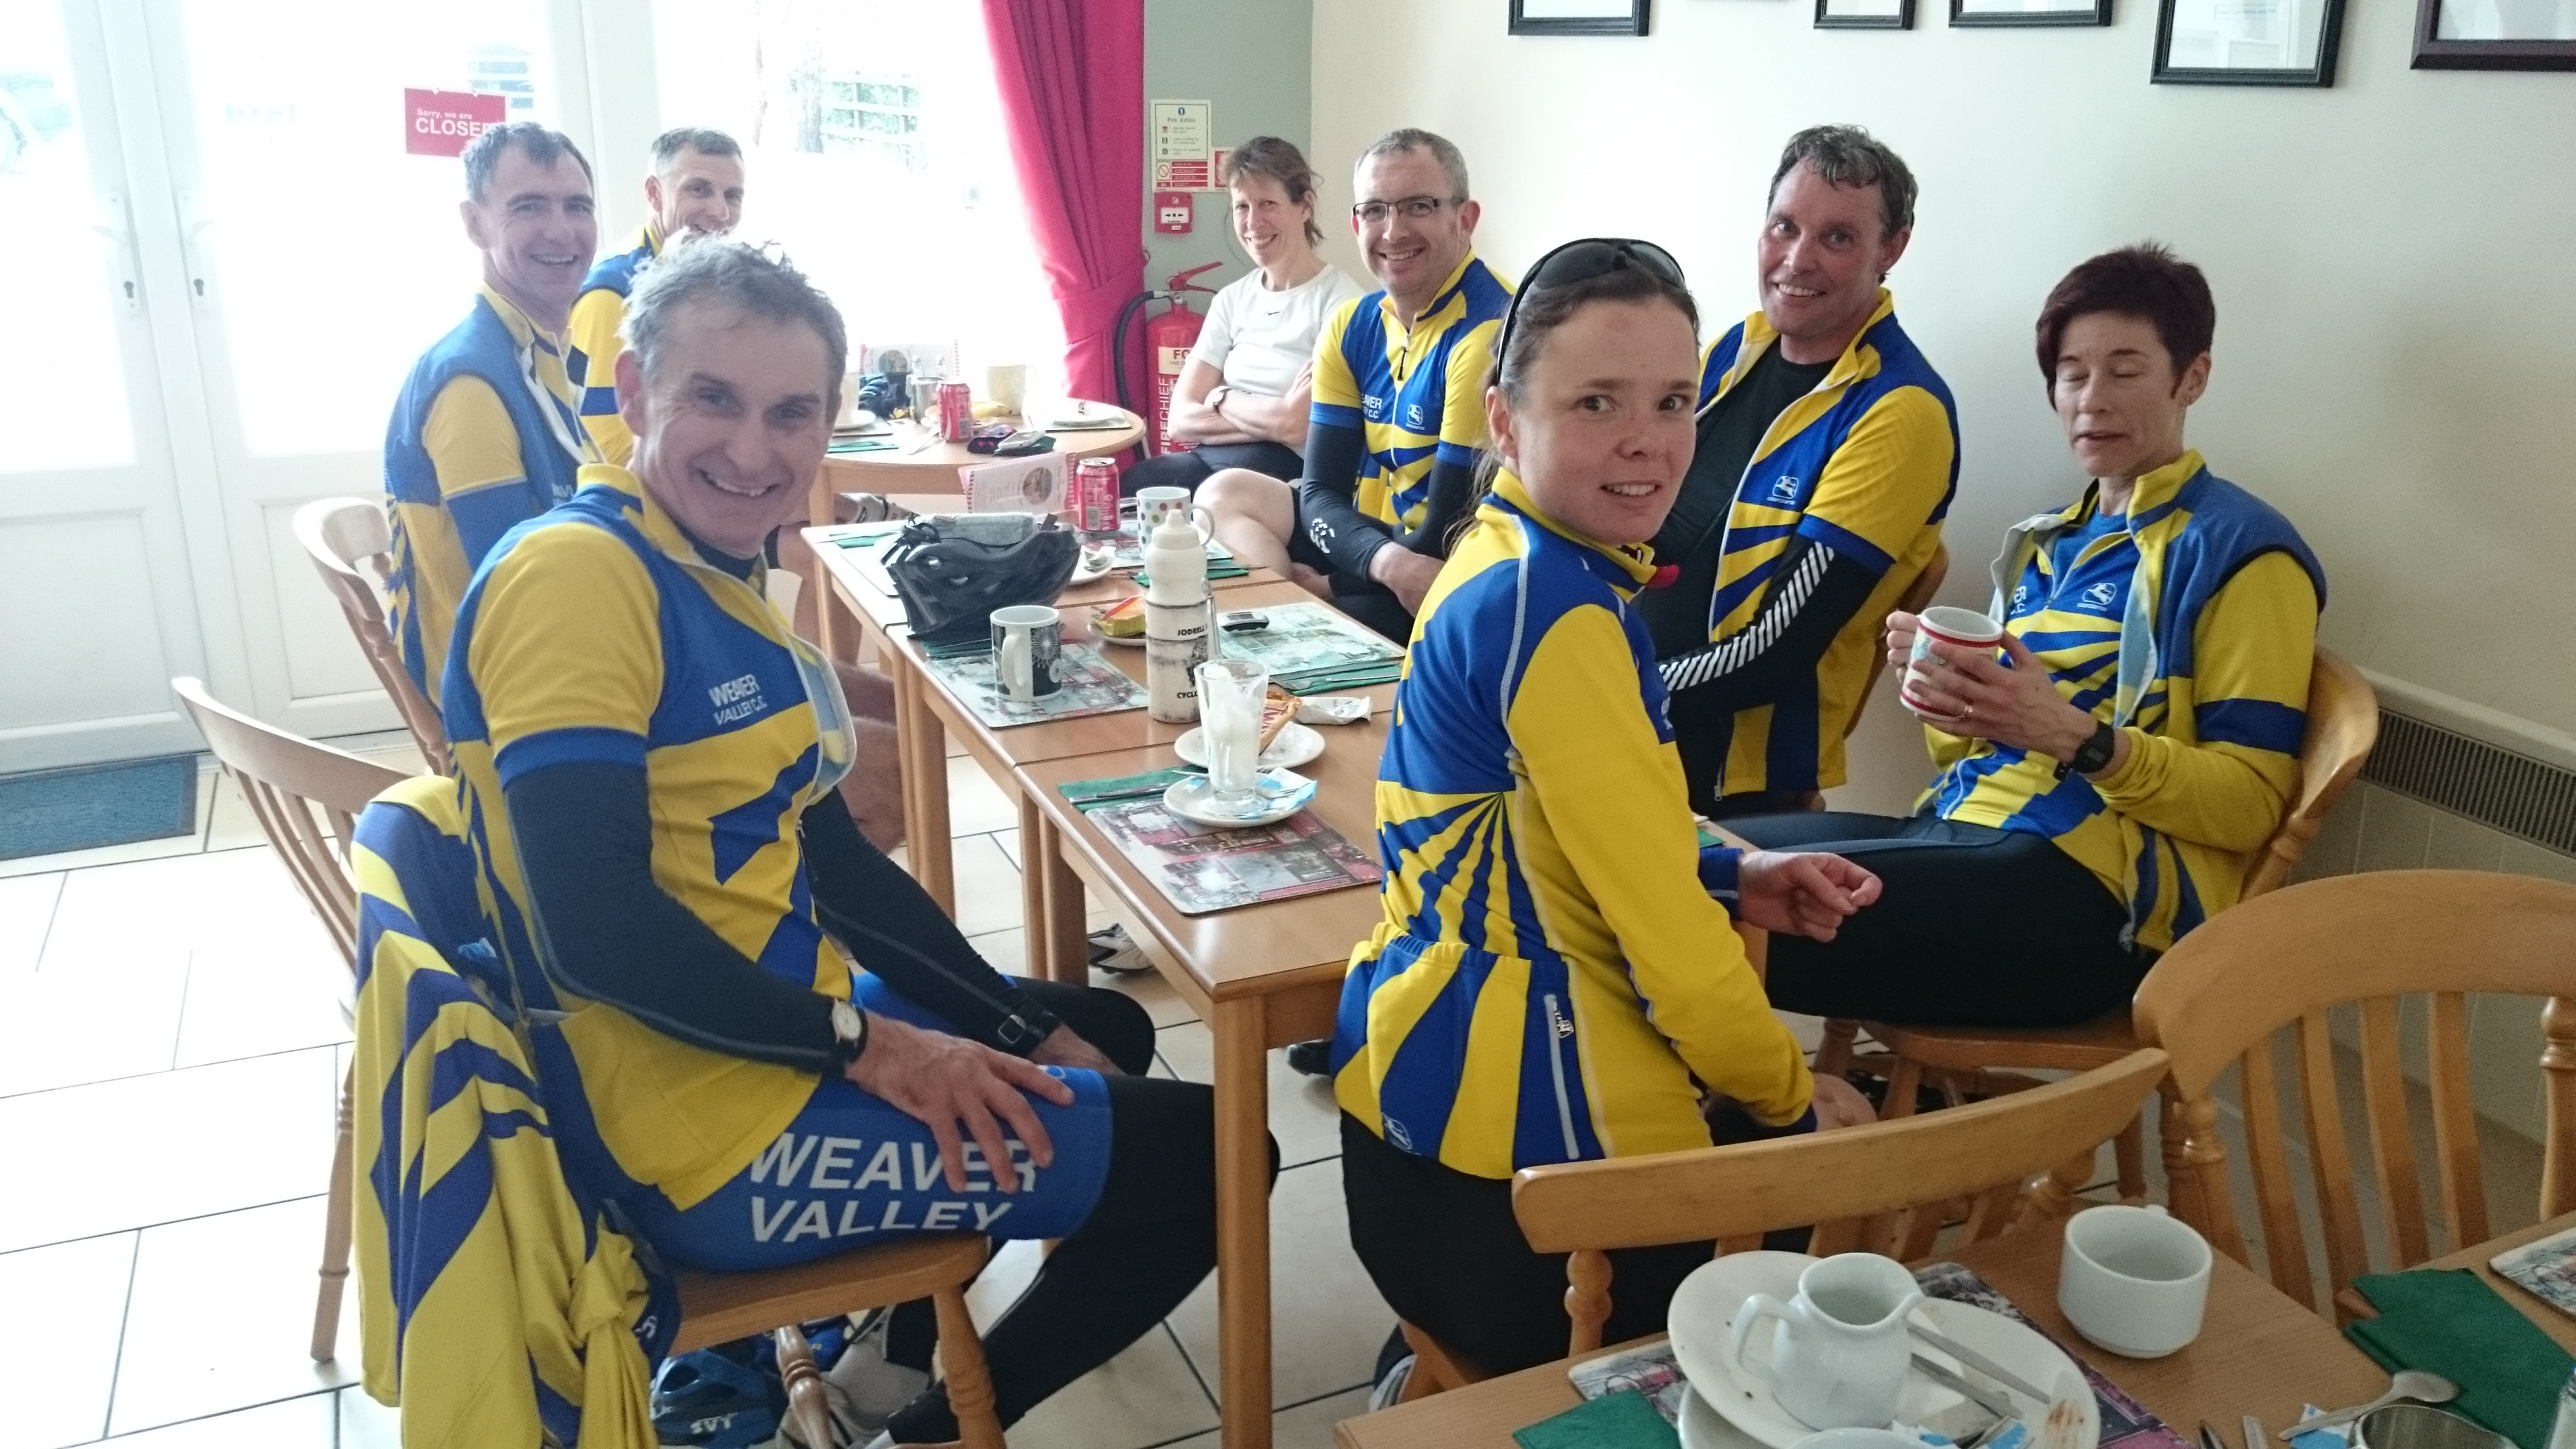 Ron Sant Memorial Ride – Audax